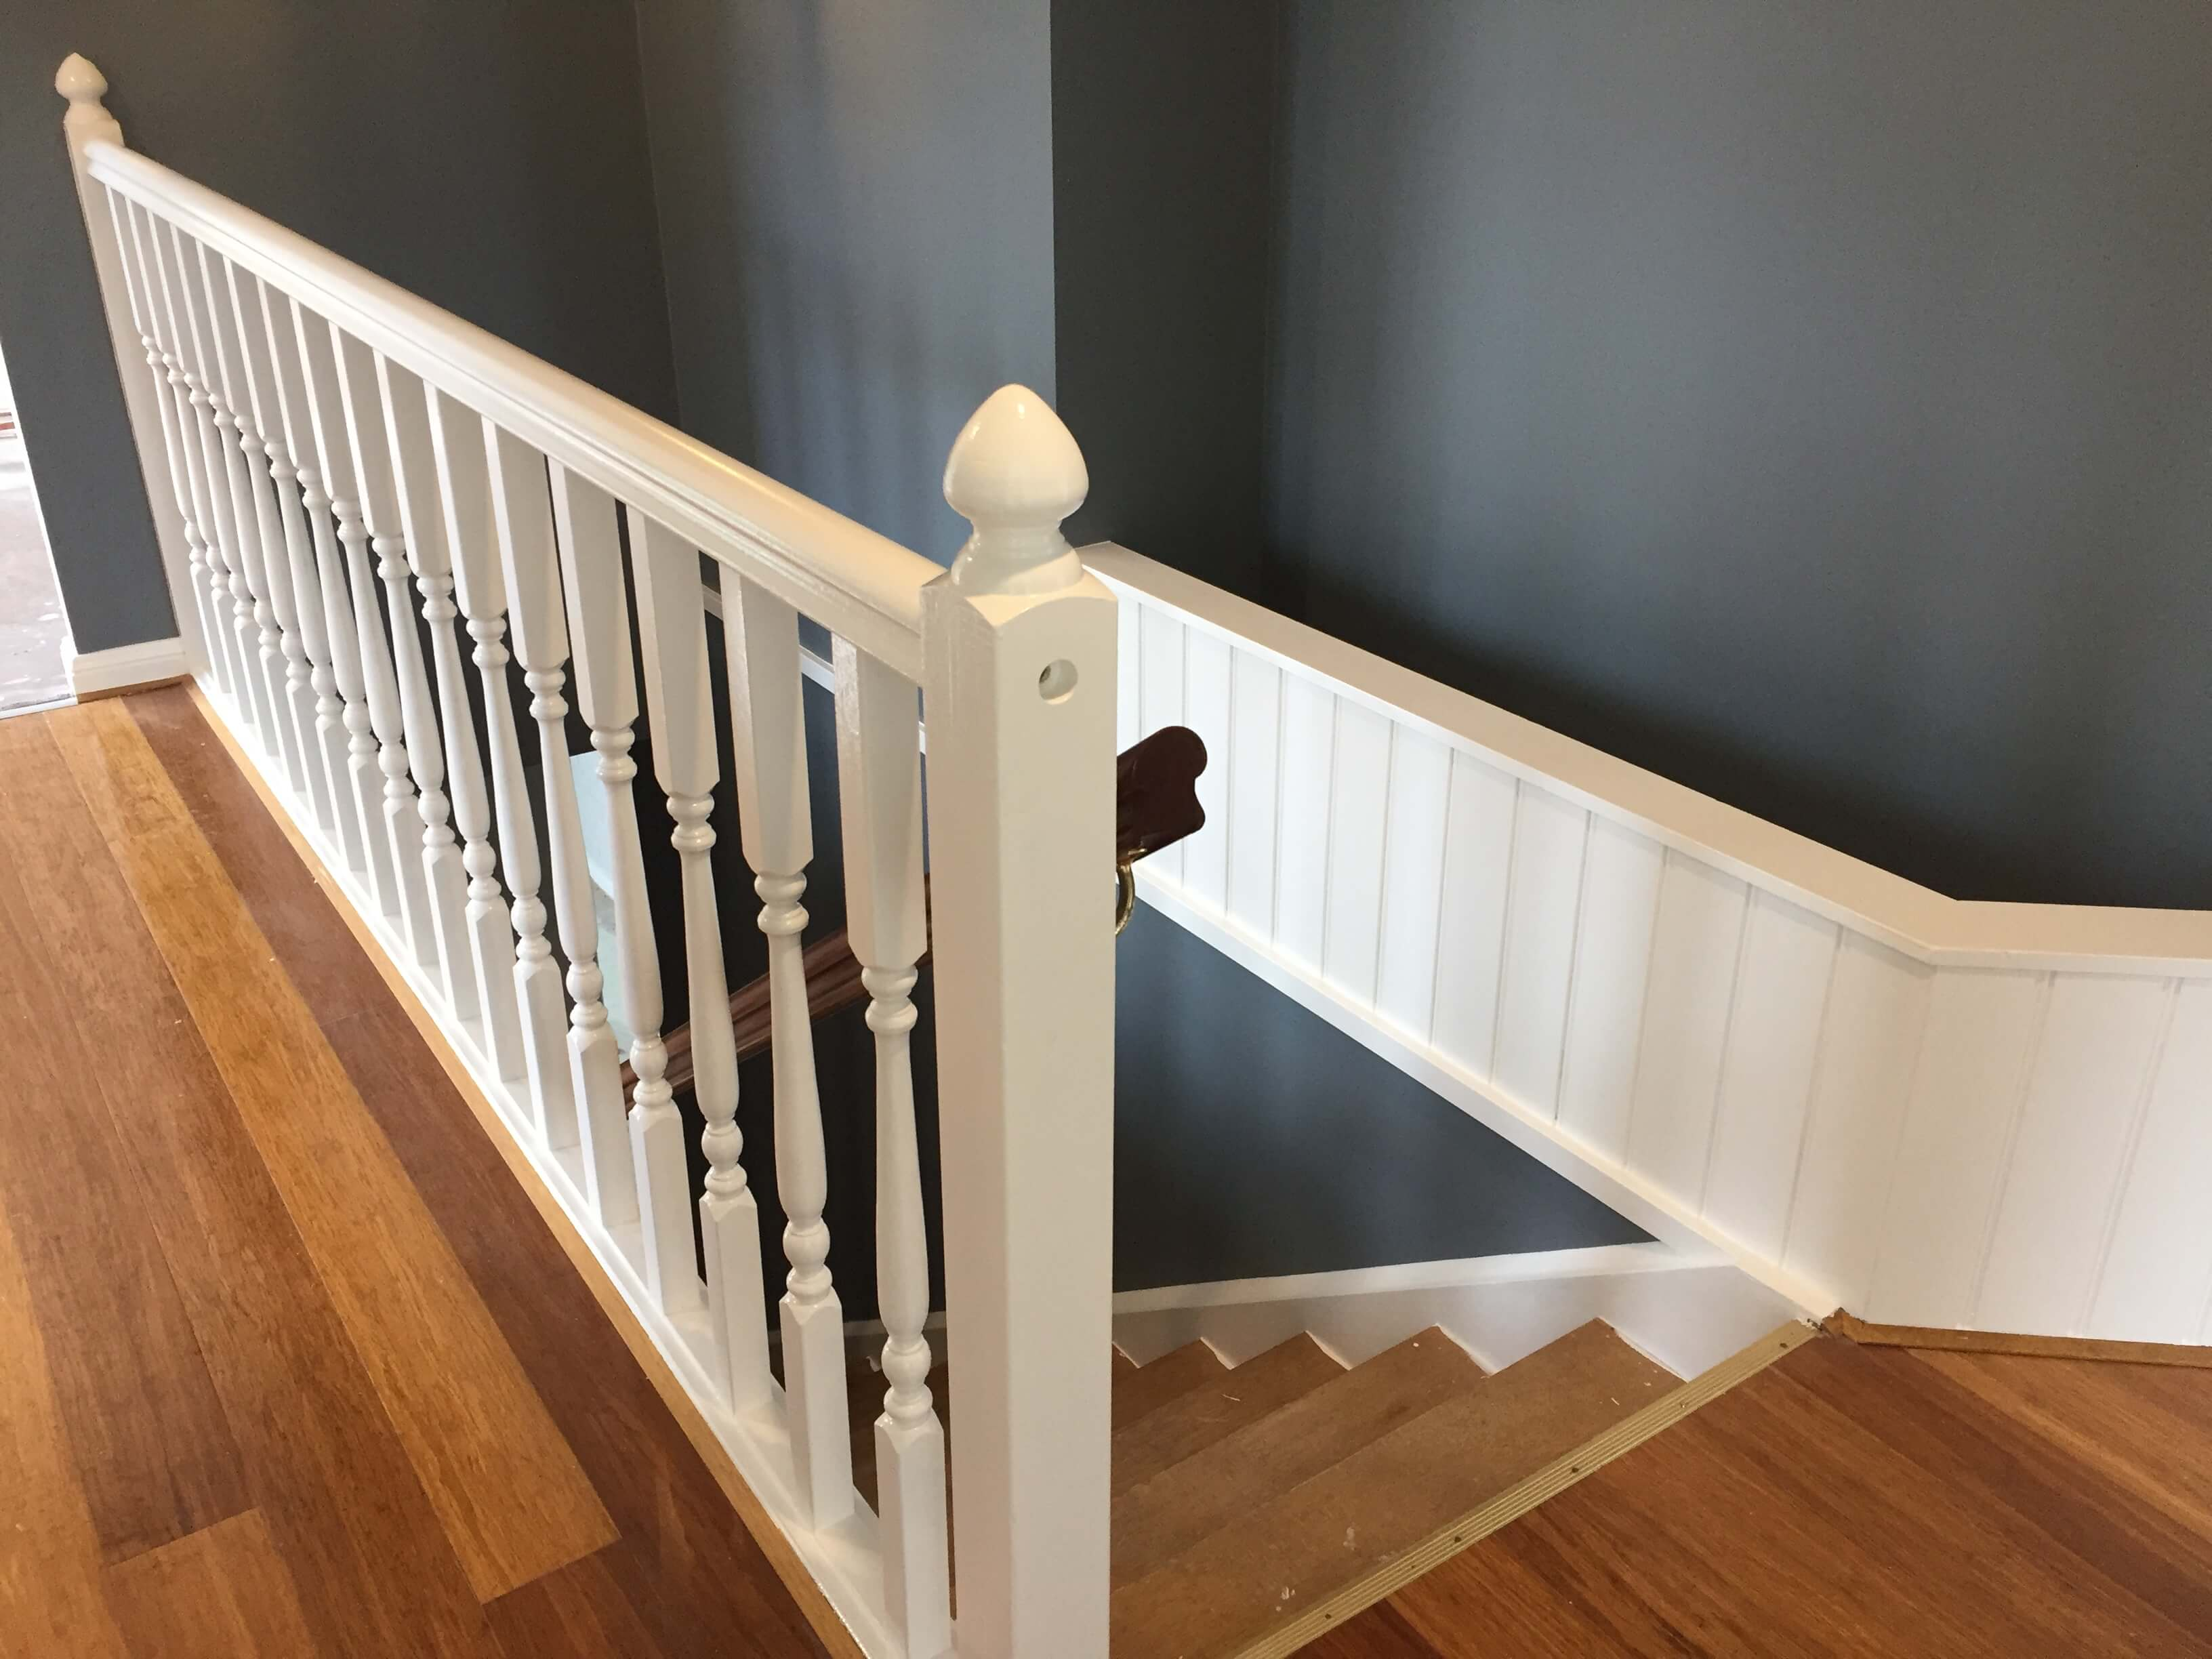 Staircase-Woodwork-Walls-B